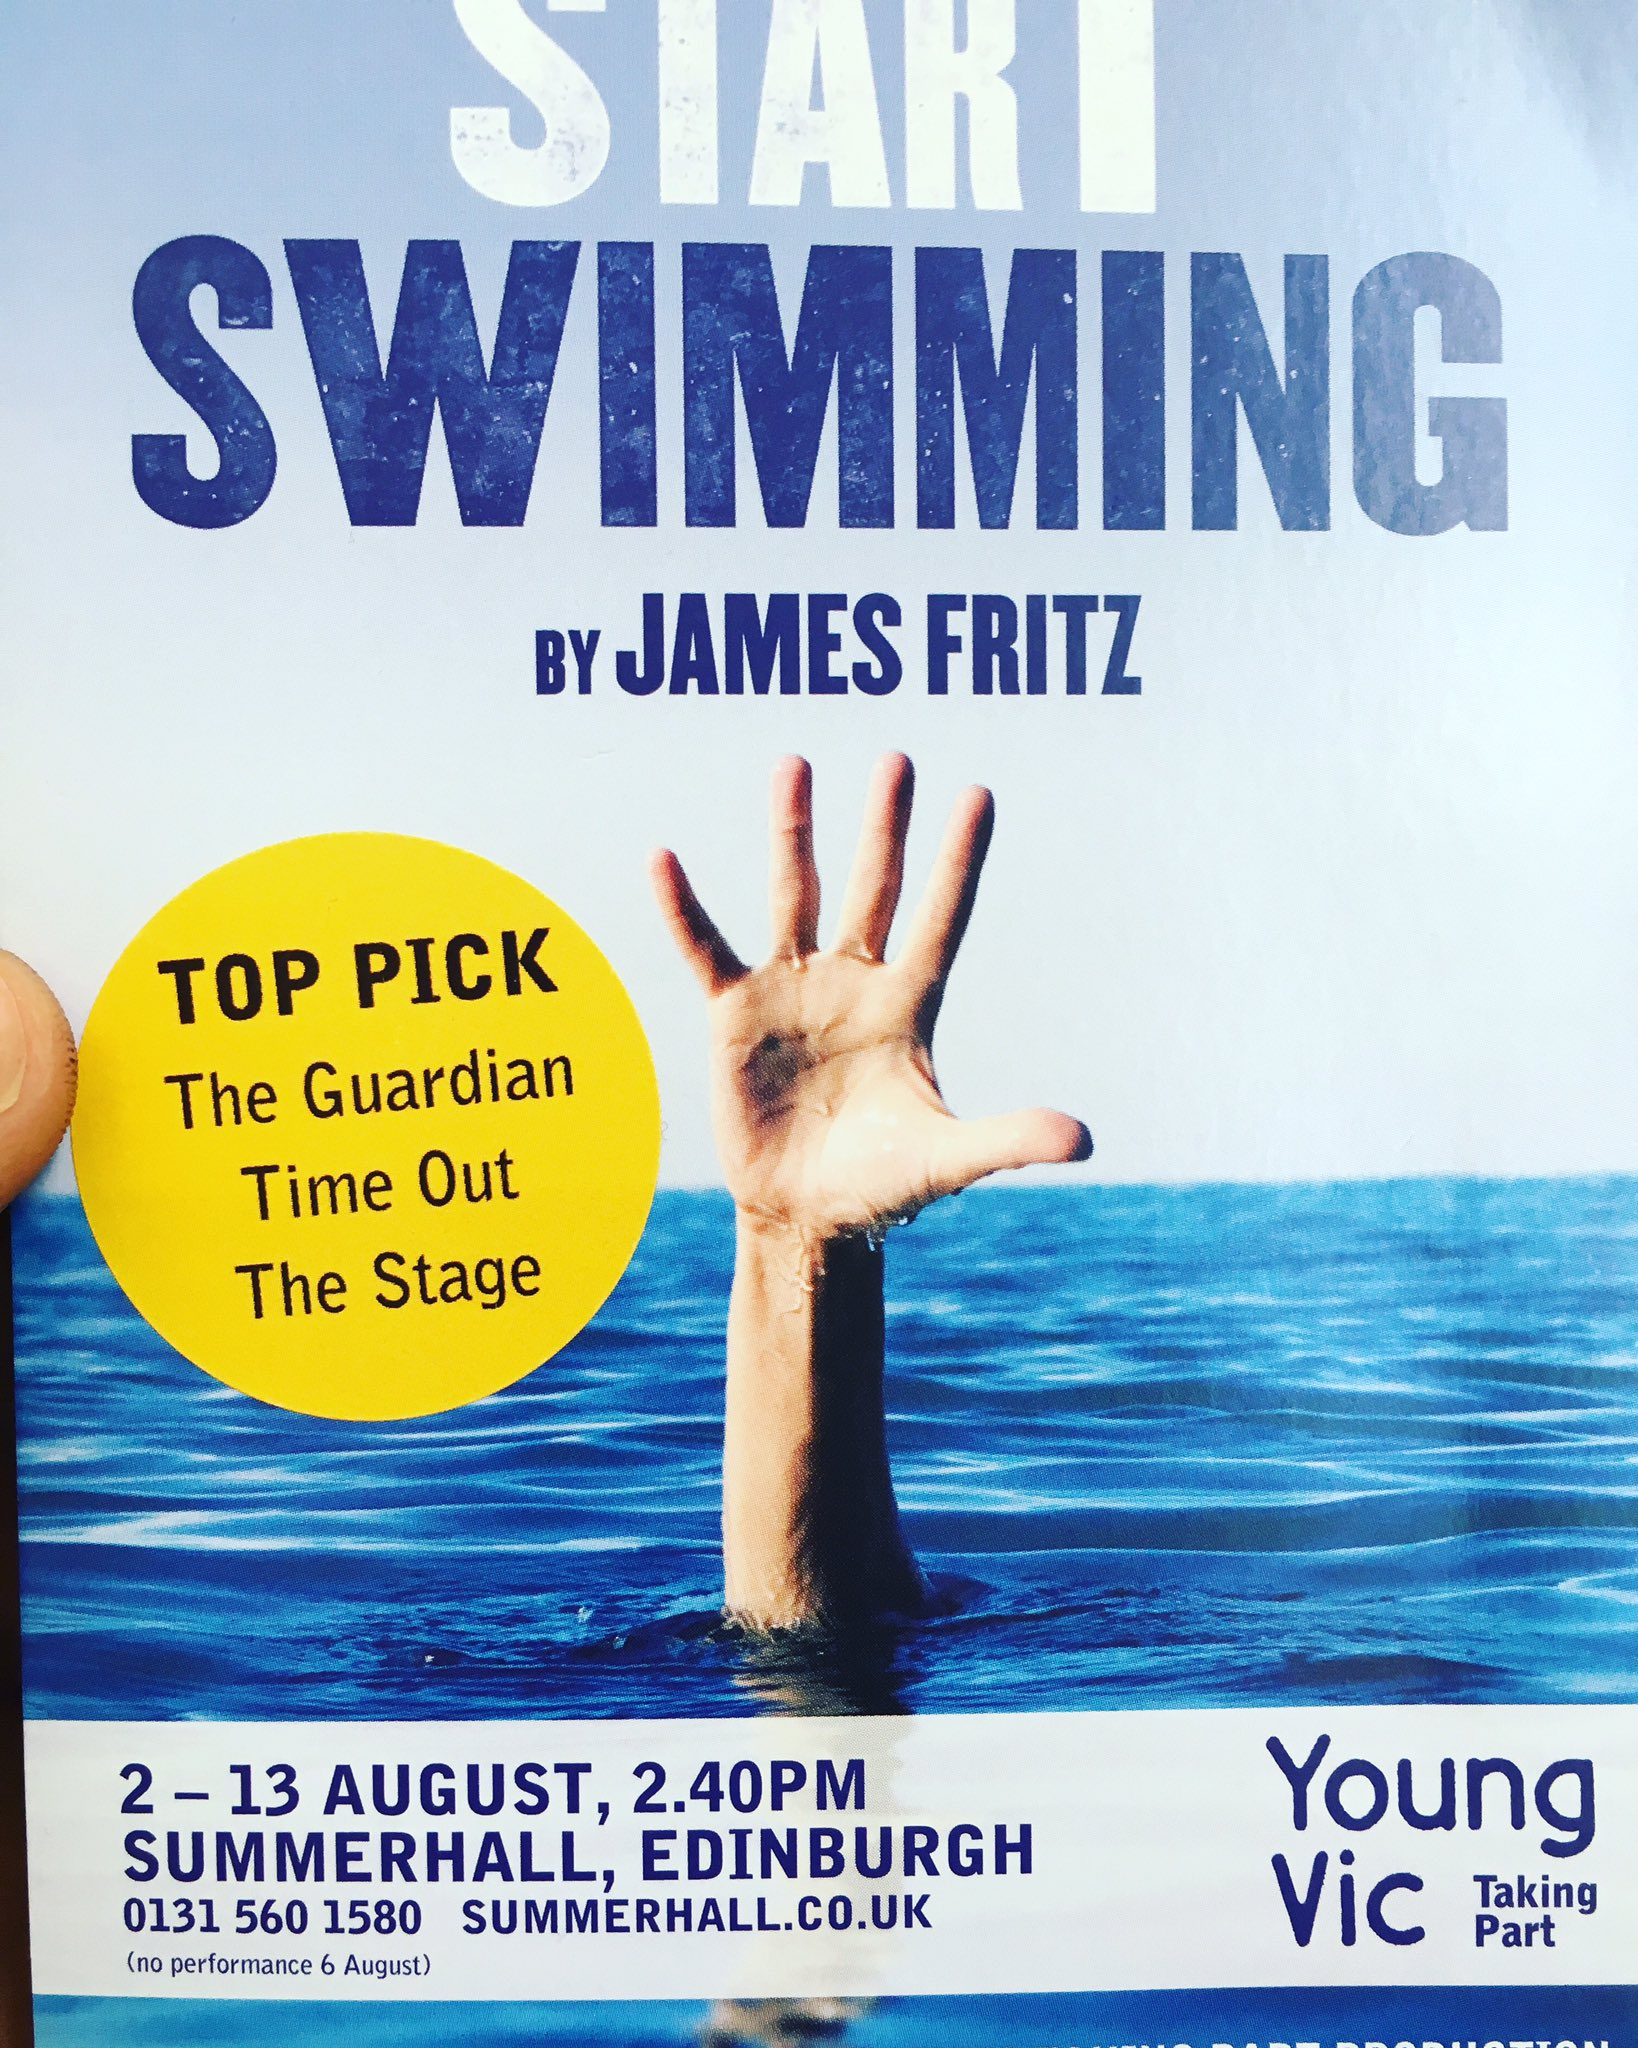 Loved #StartSwimming by James Fritz & @youngvictheatre Taking Part @edintfest. Wonderful writing fully deserved @TimeOut @TheStage top picks https://t.co/SOVHljLF8R